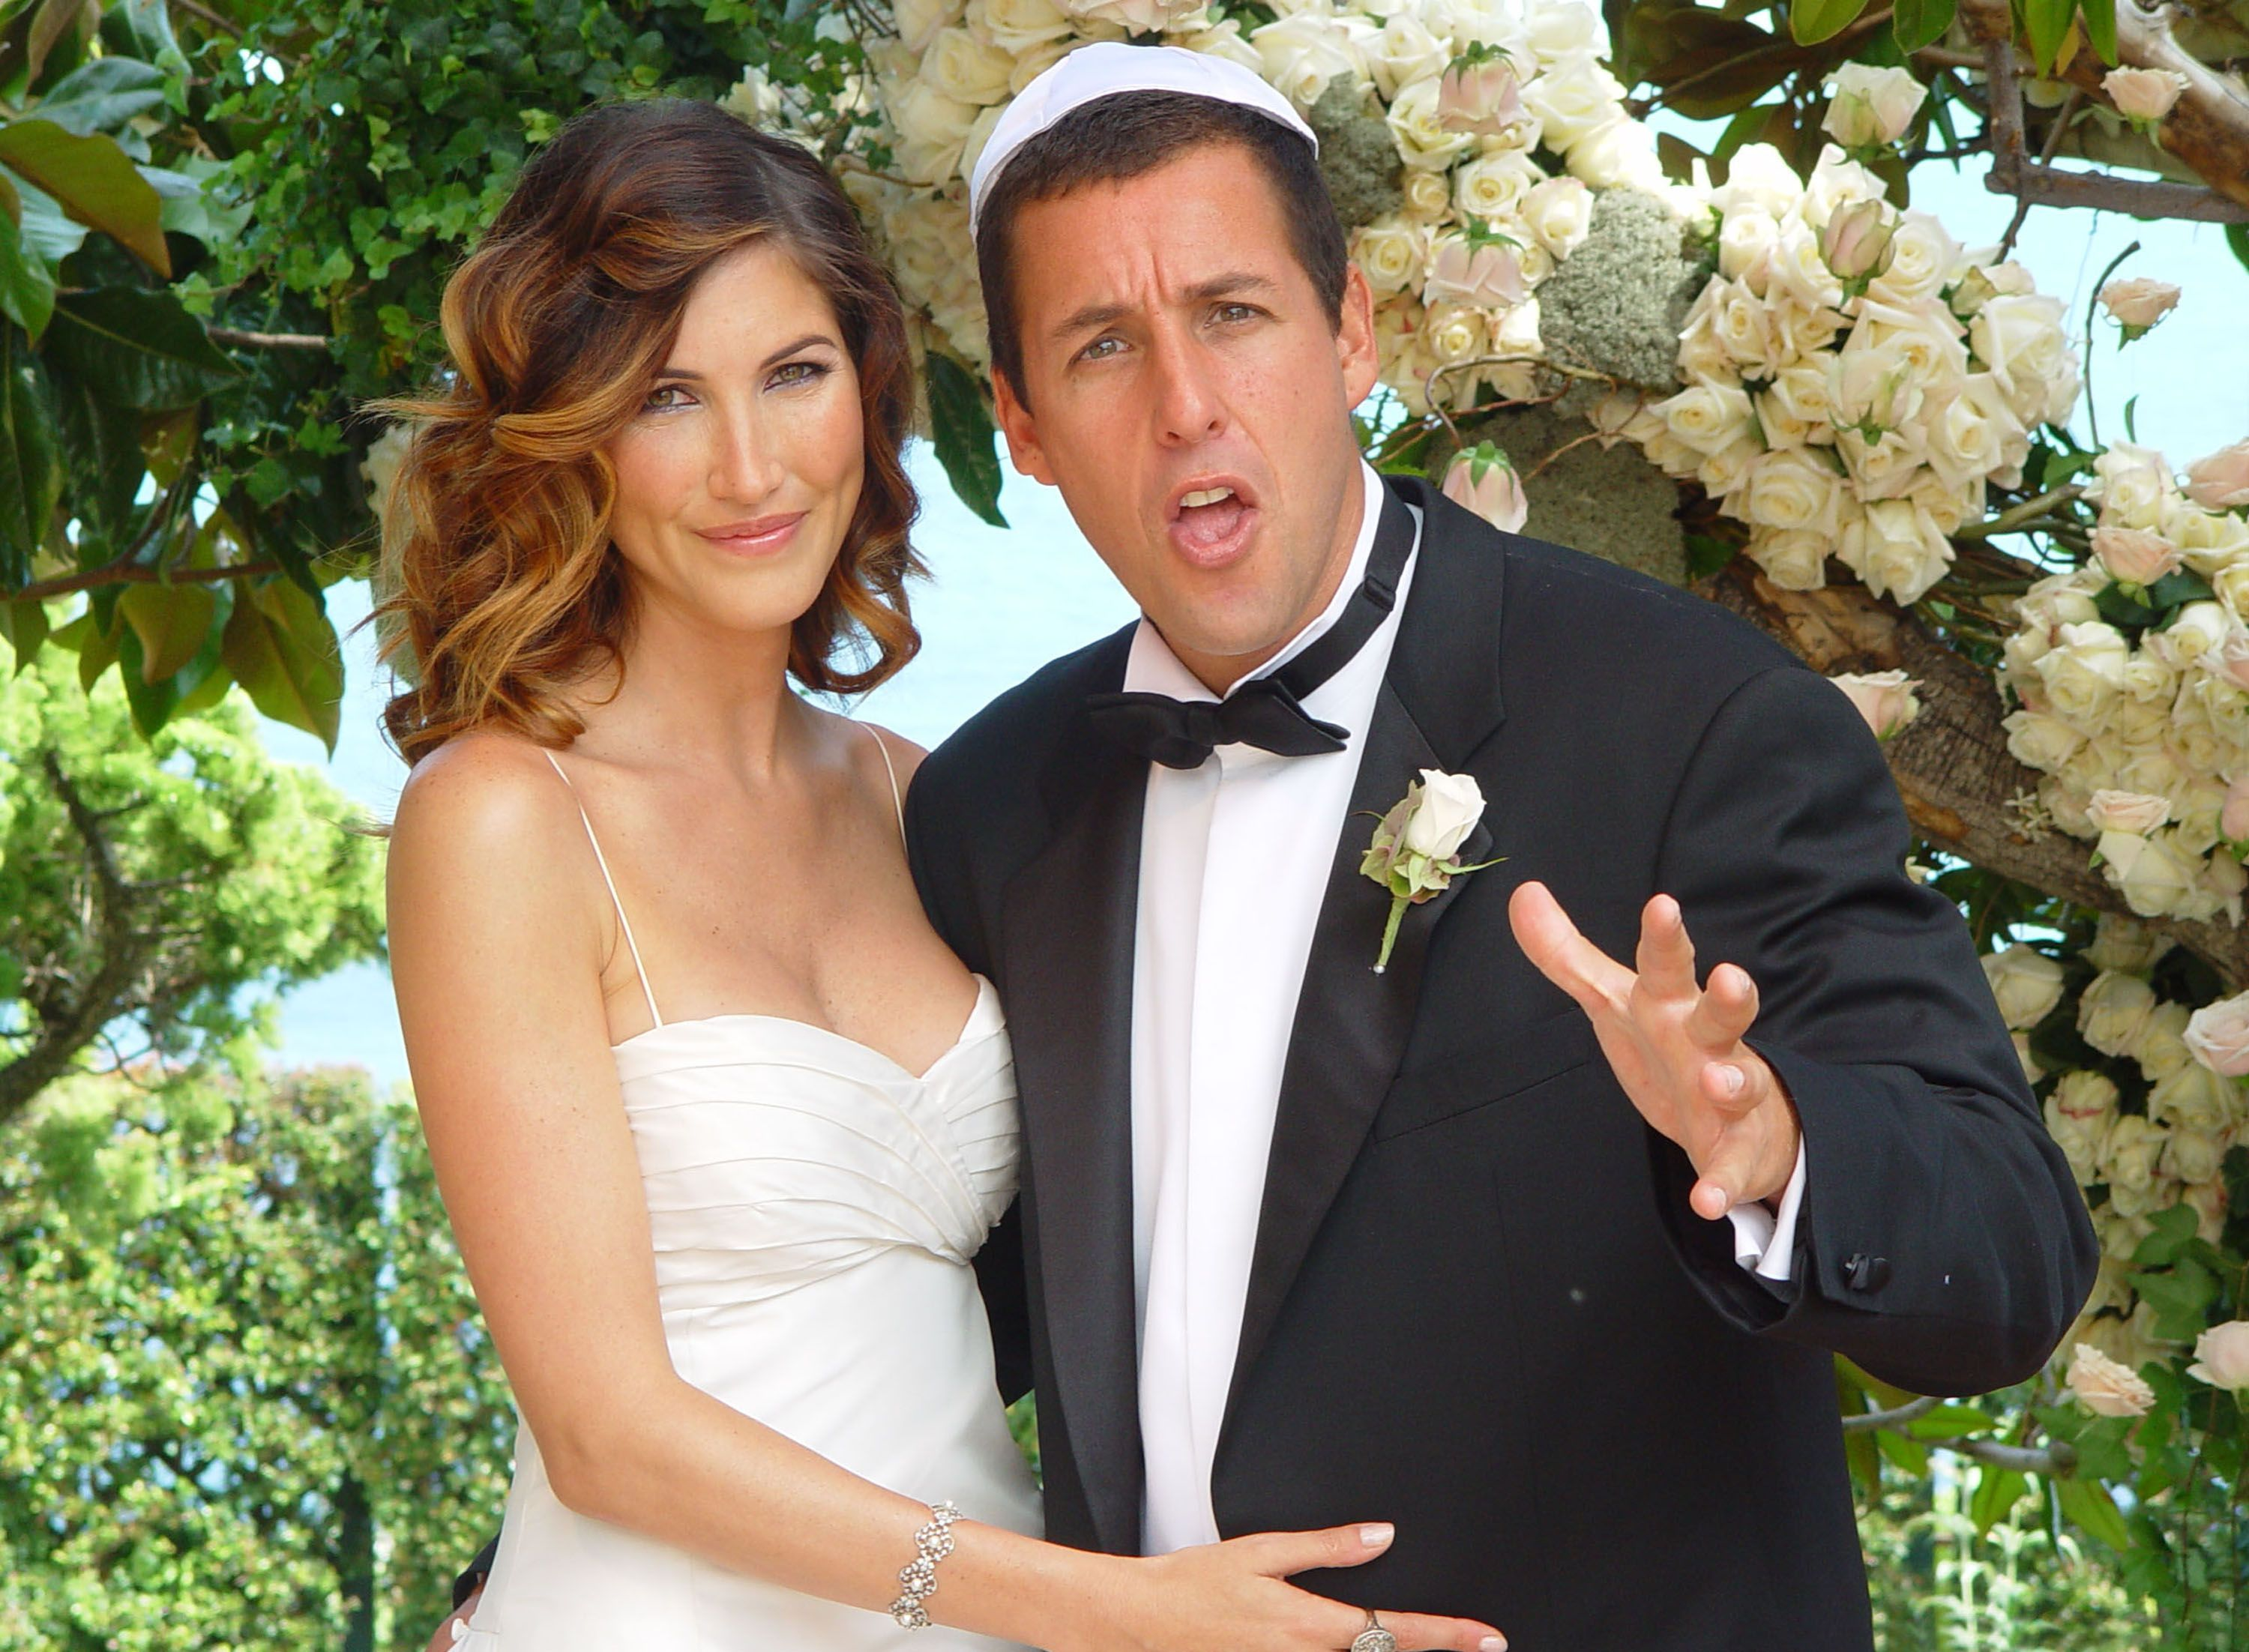 Adam Sandler and Jackie Titone on their wedding day in 2003 | Souce: Getty Images